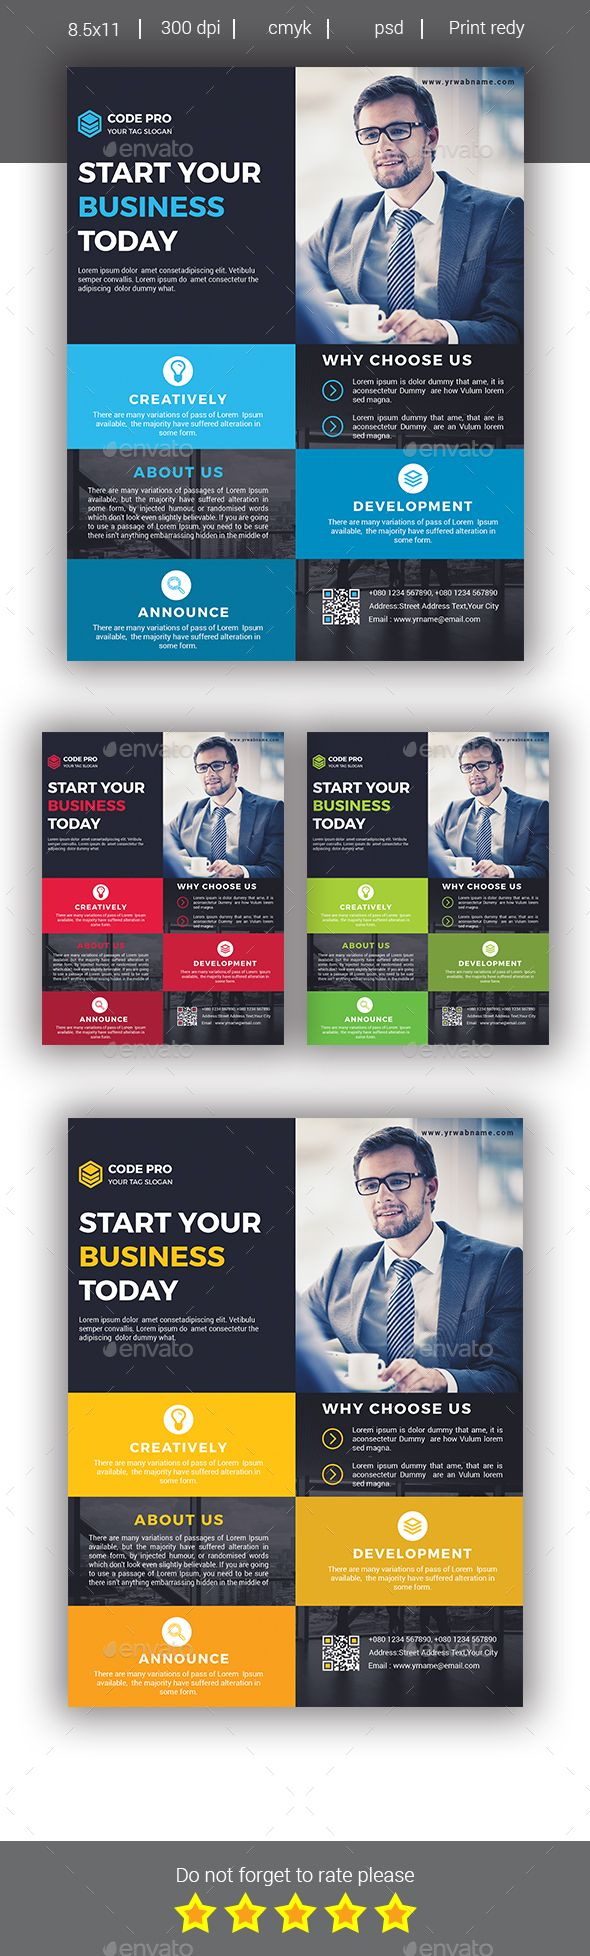 Best Creative Corporate Flyers Images On   Corporate